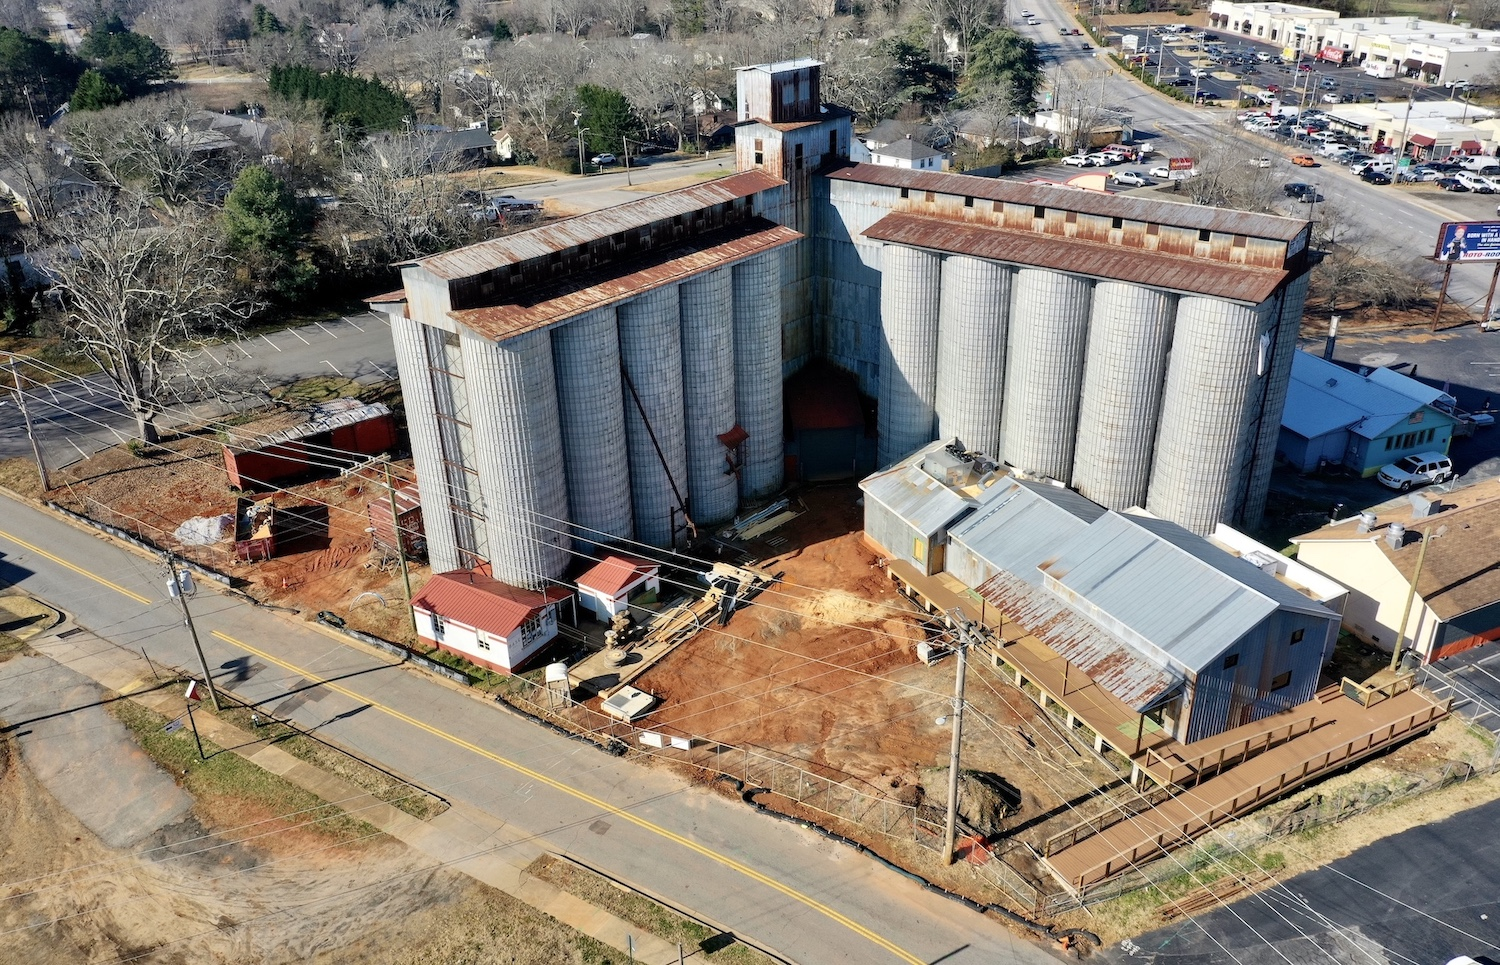 Easley Silos | Aerial photo by Jacob Sharp